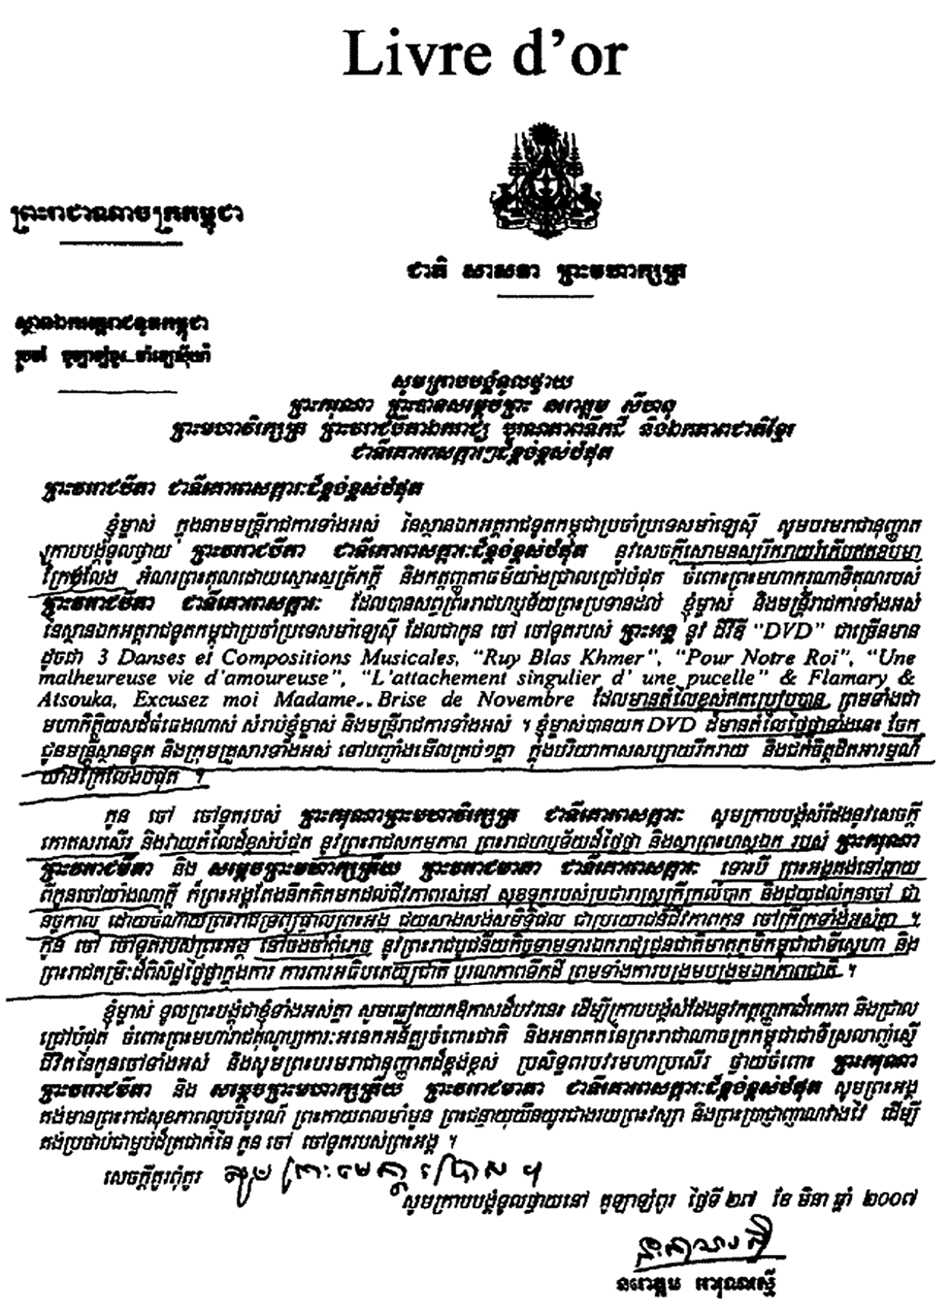 All/document/Documents/Cinma/LivredOr/id2290/photo001.jpg